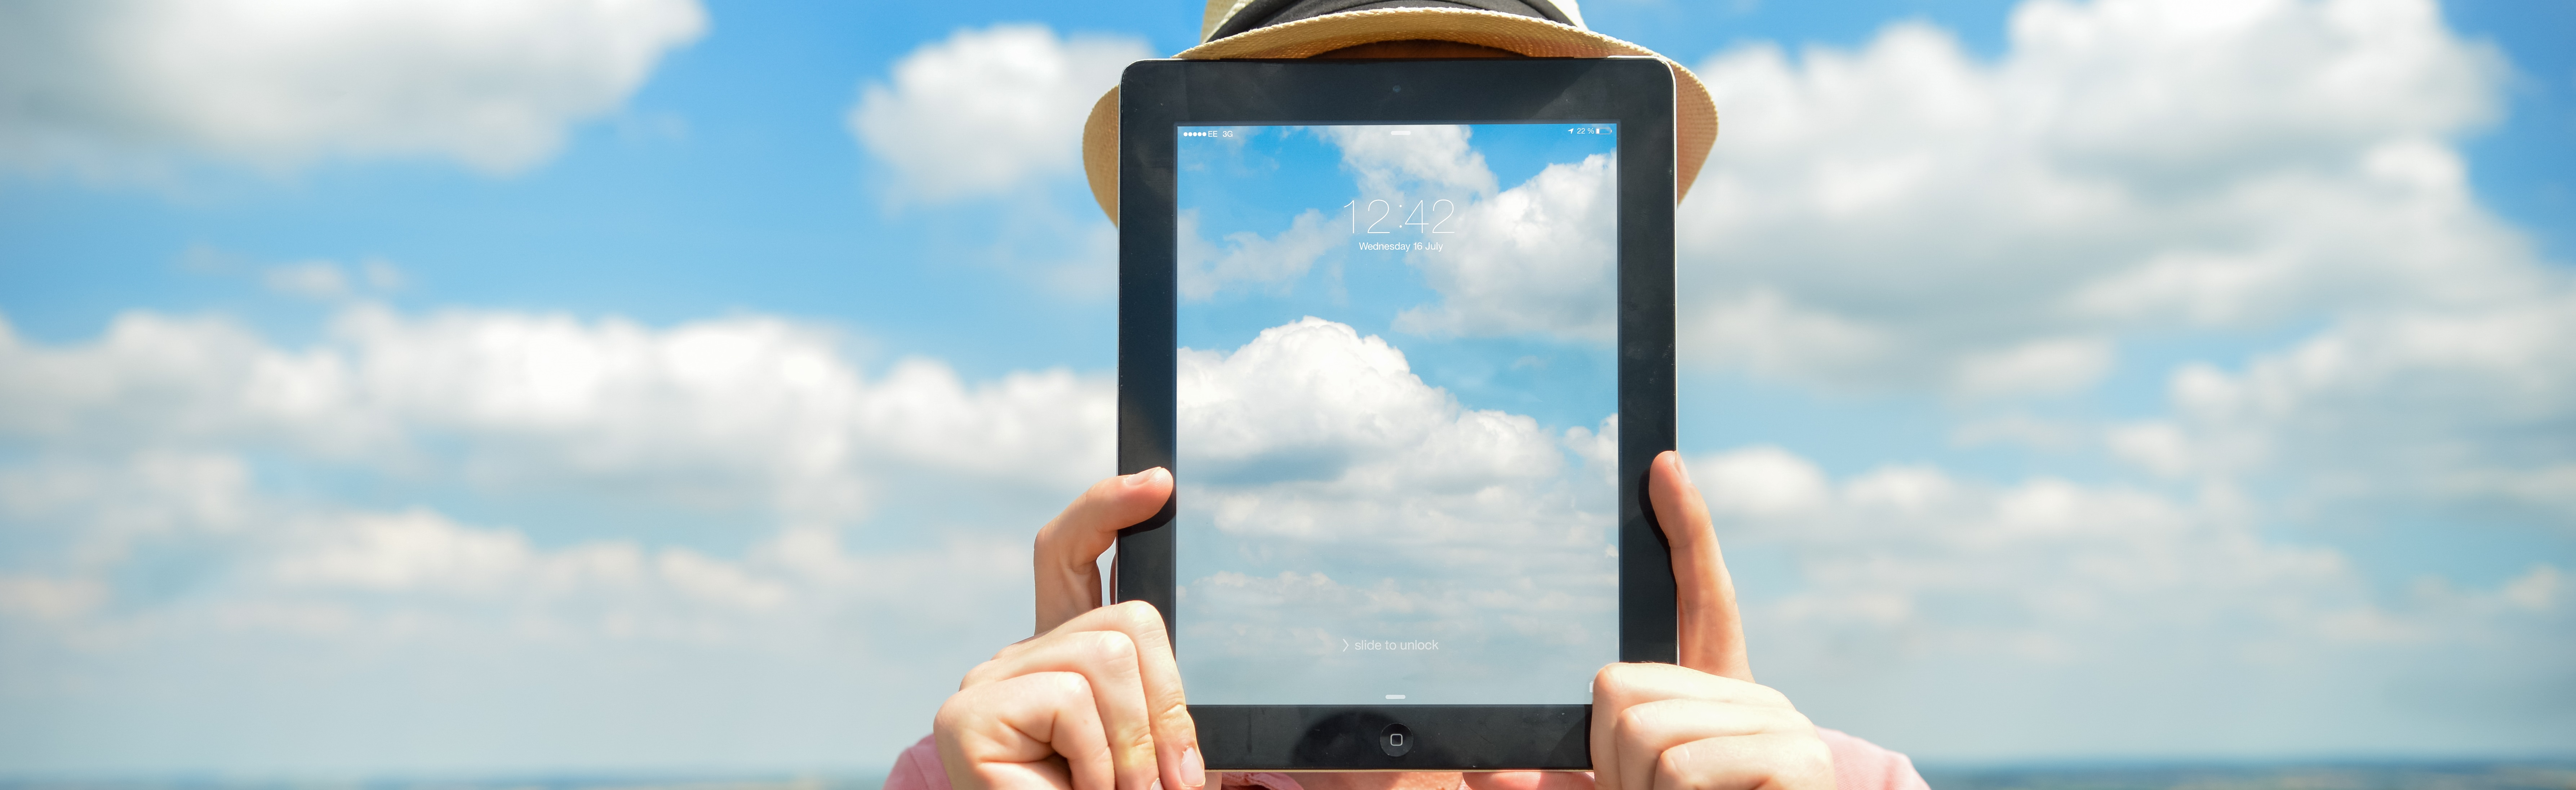 man-person-clouds-apple-1